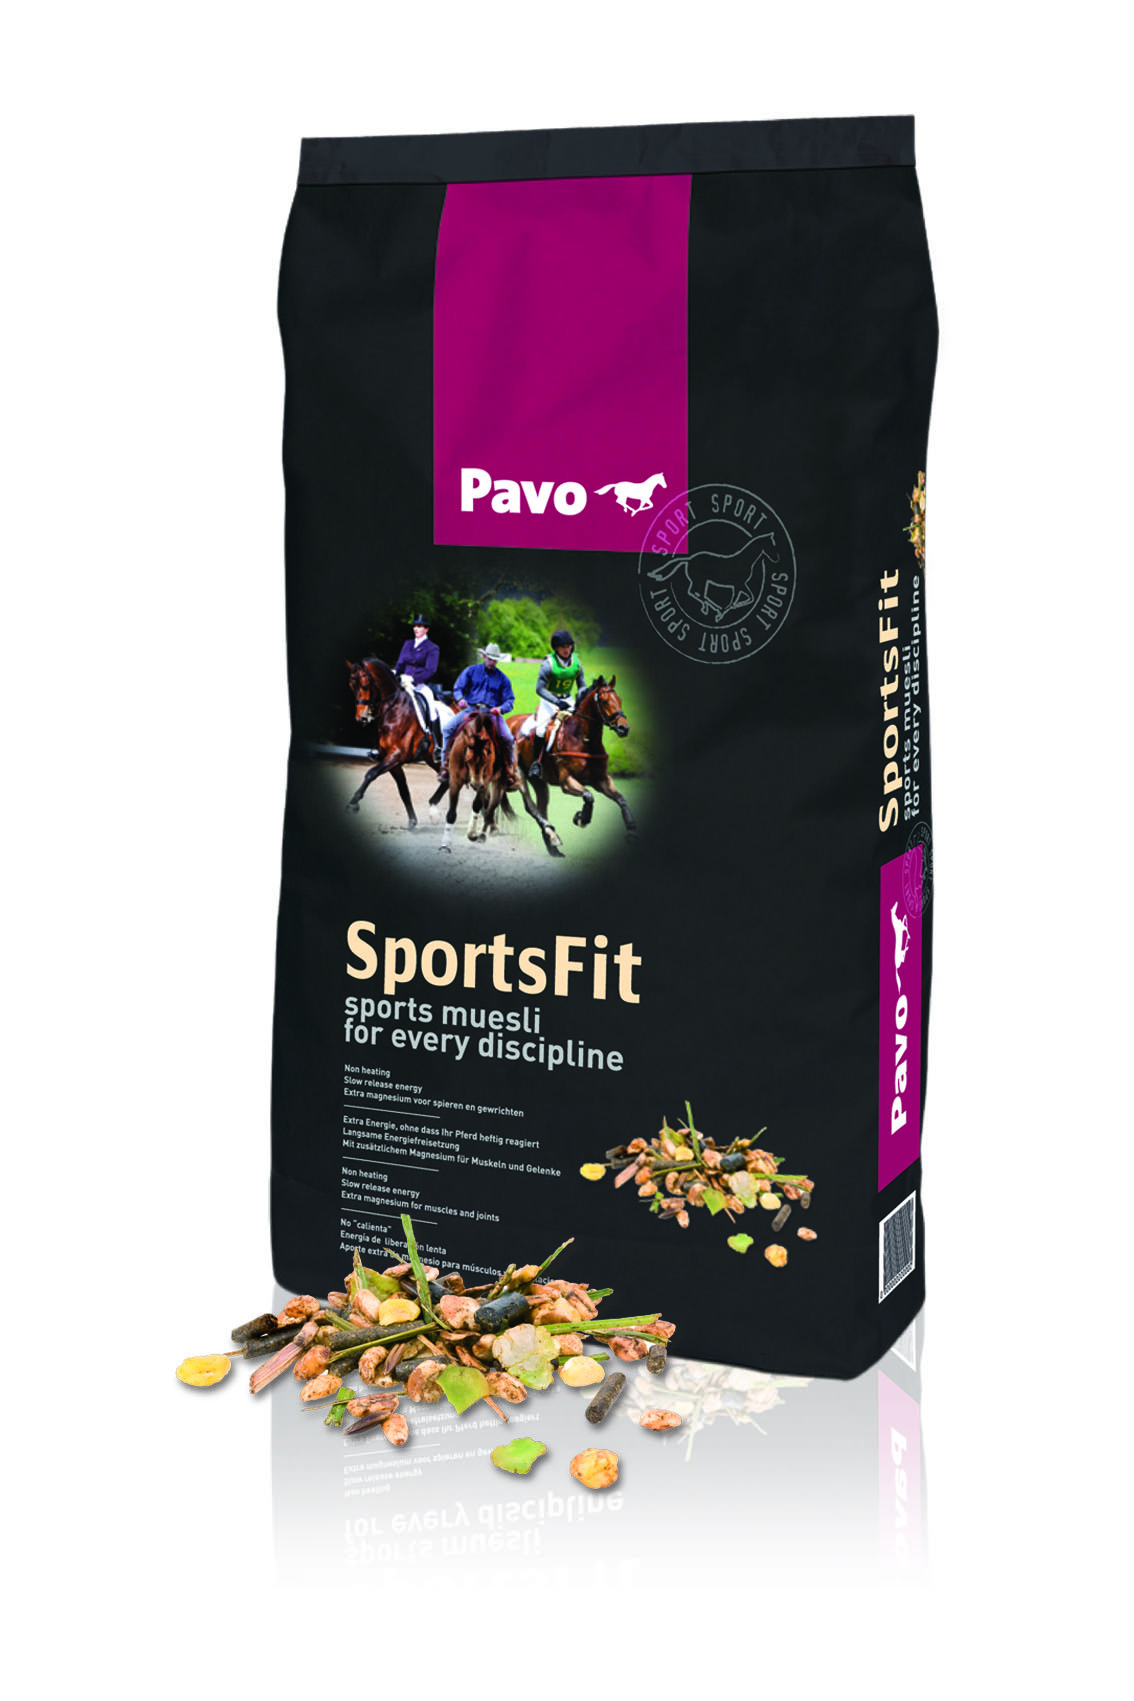 Pavo Sports Fit müsli 15kg